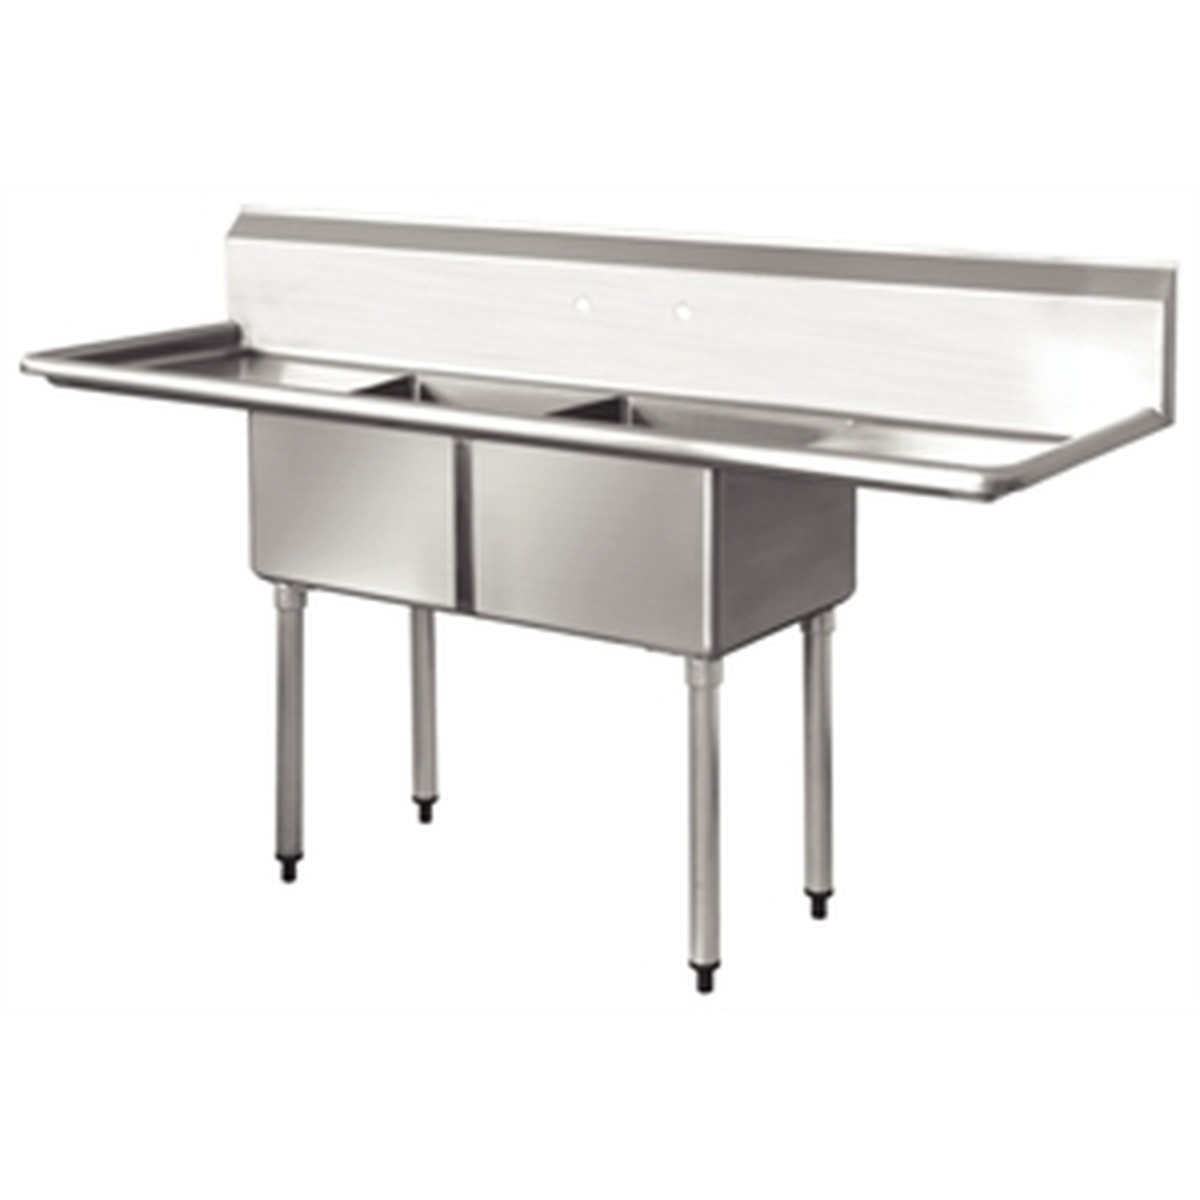 ... Brand New Stainless Steel Double Sink (3791)- Bridgwater, Somerset